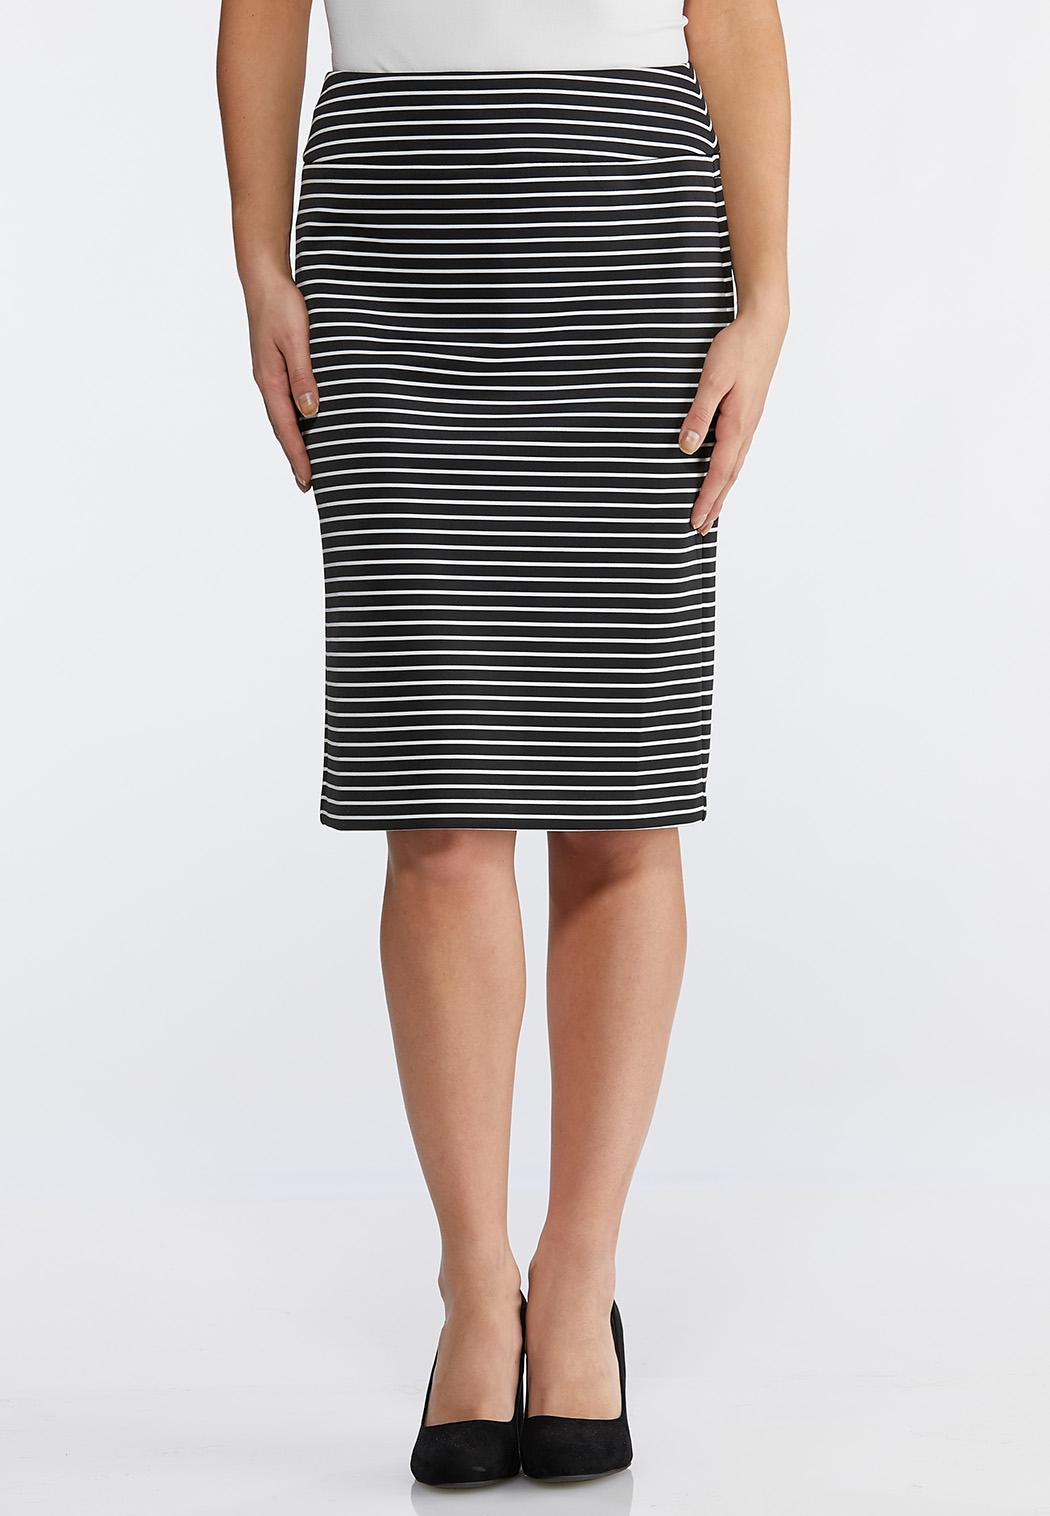 77811ee7849 Stripe Scuba Pencil Skirt alternate view · Stripe Scuba Pencil Skirt